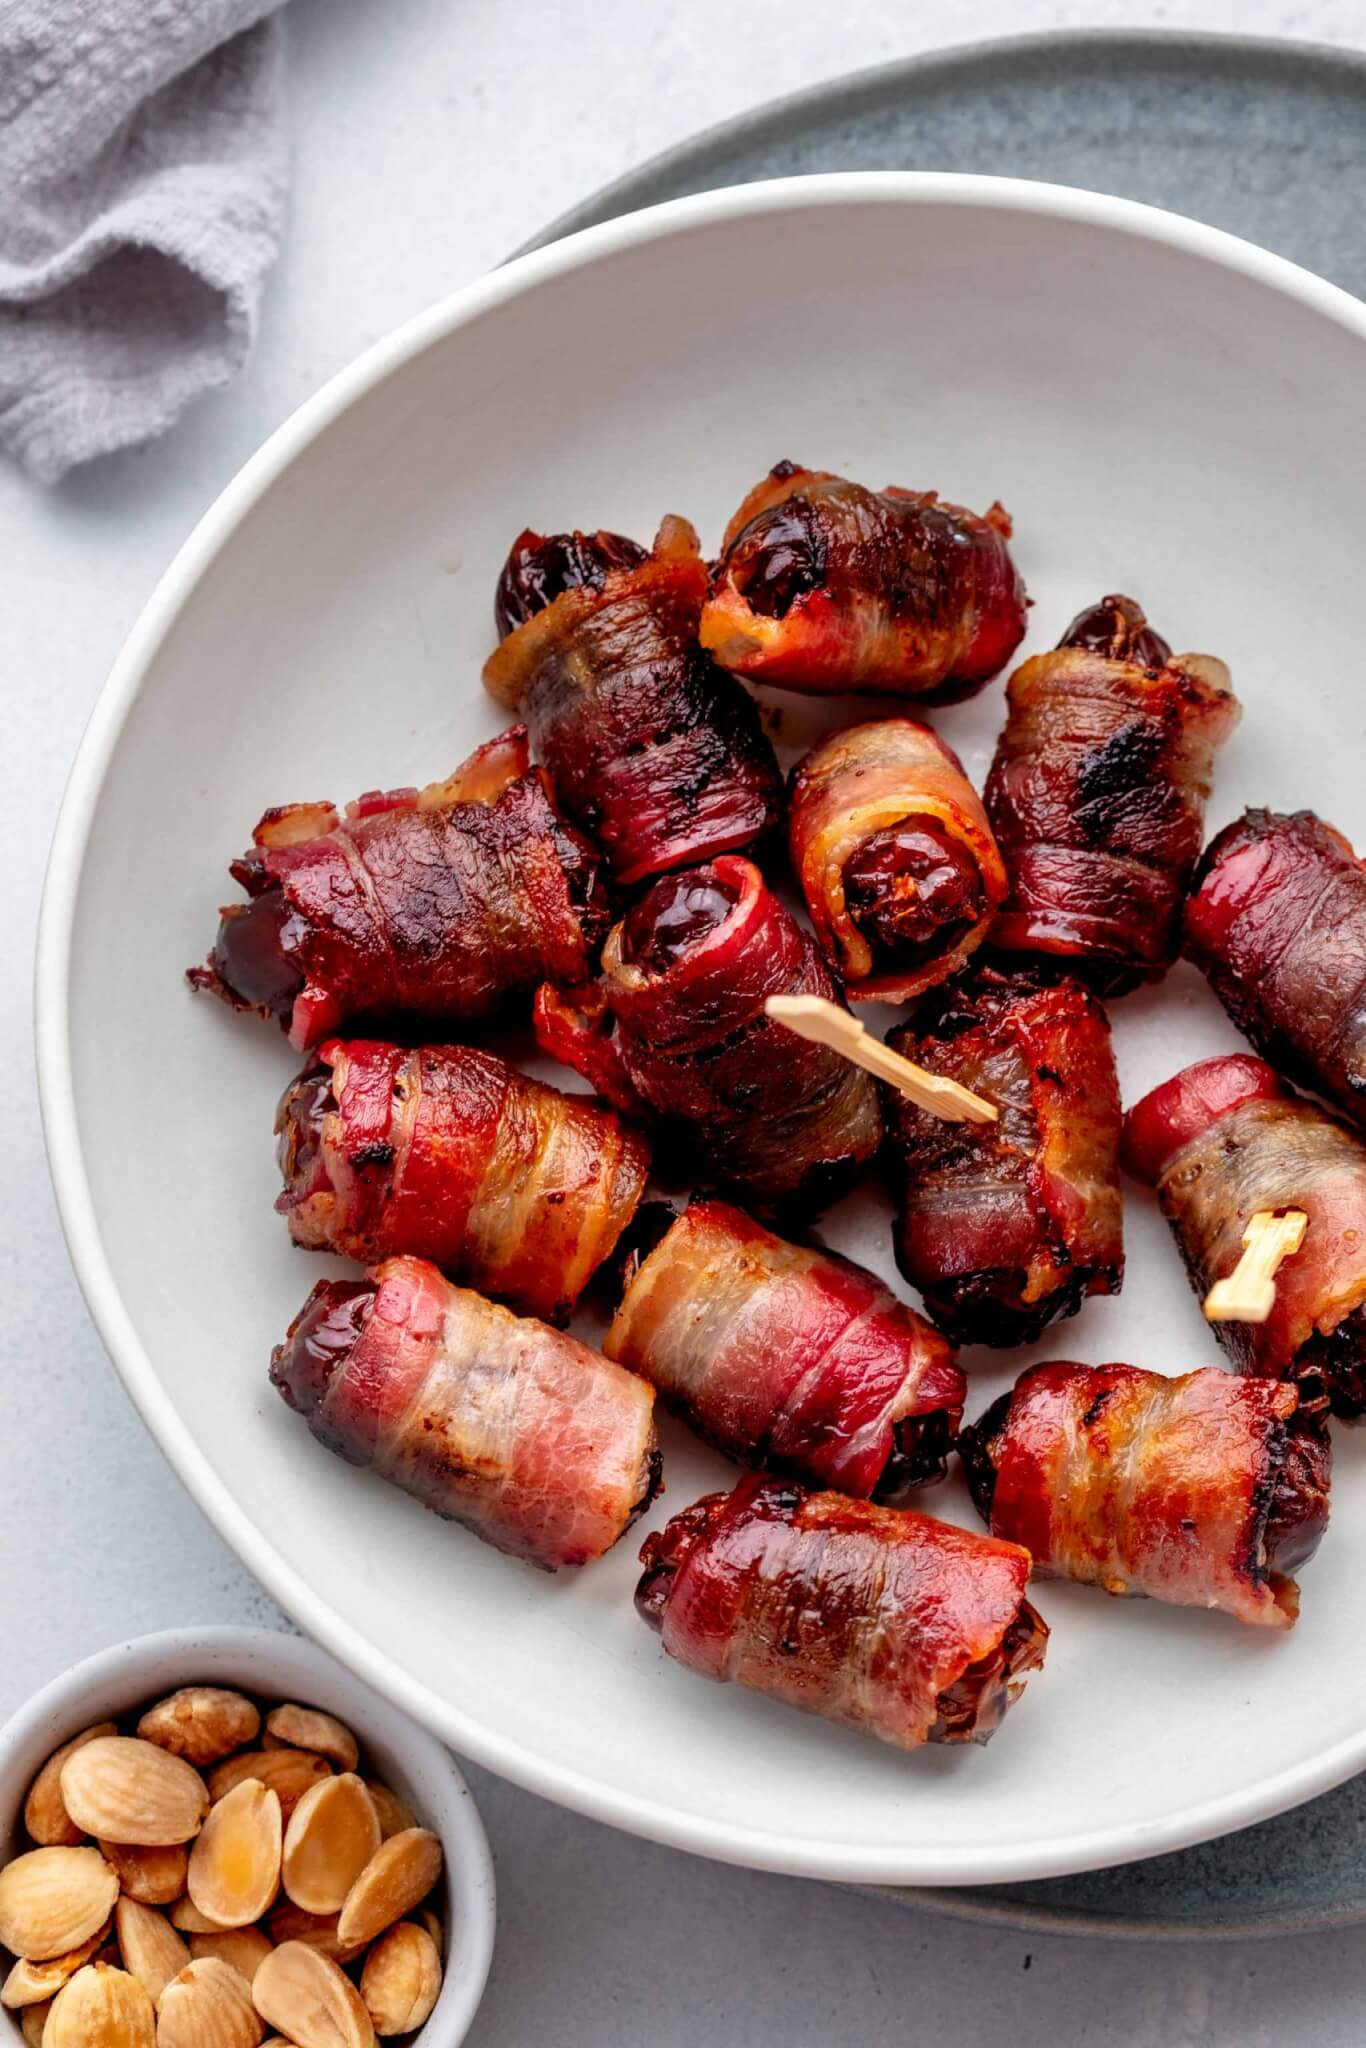 Overhead shot of bacon wrapped dates in bowl.